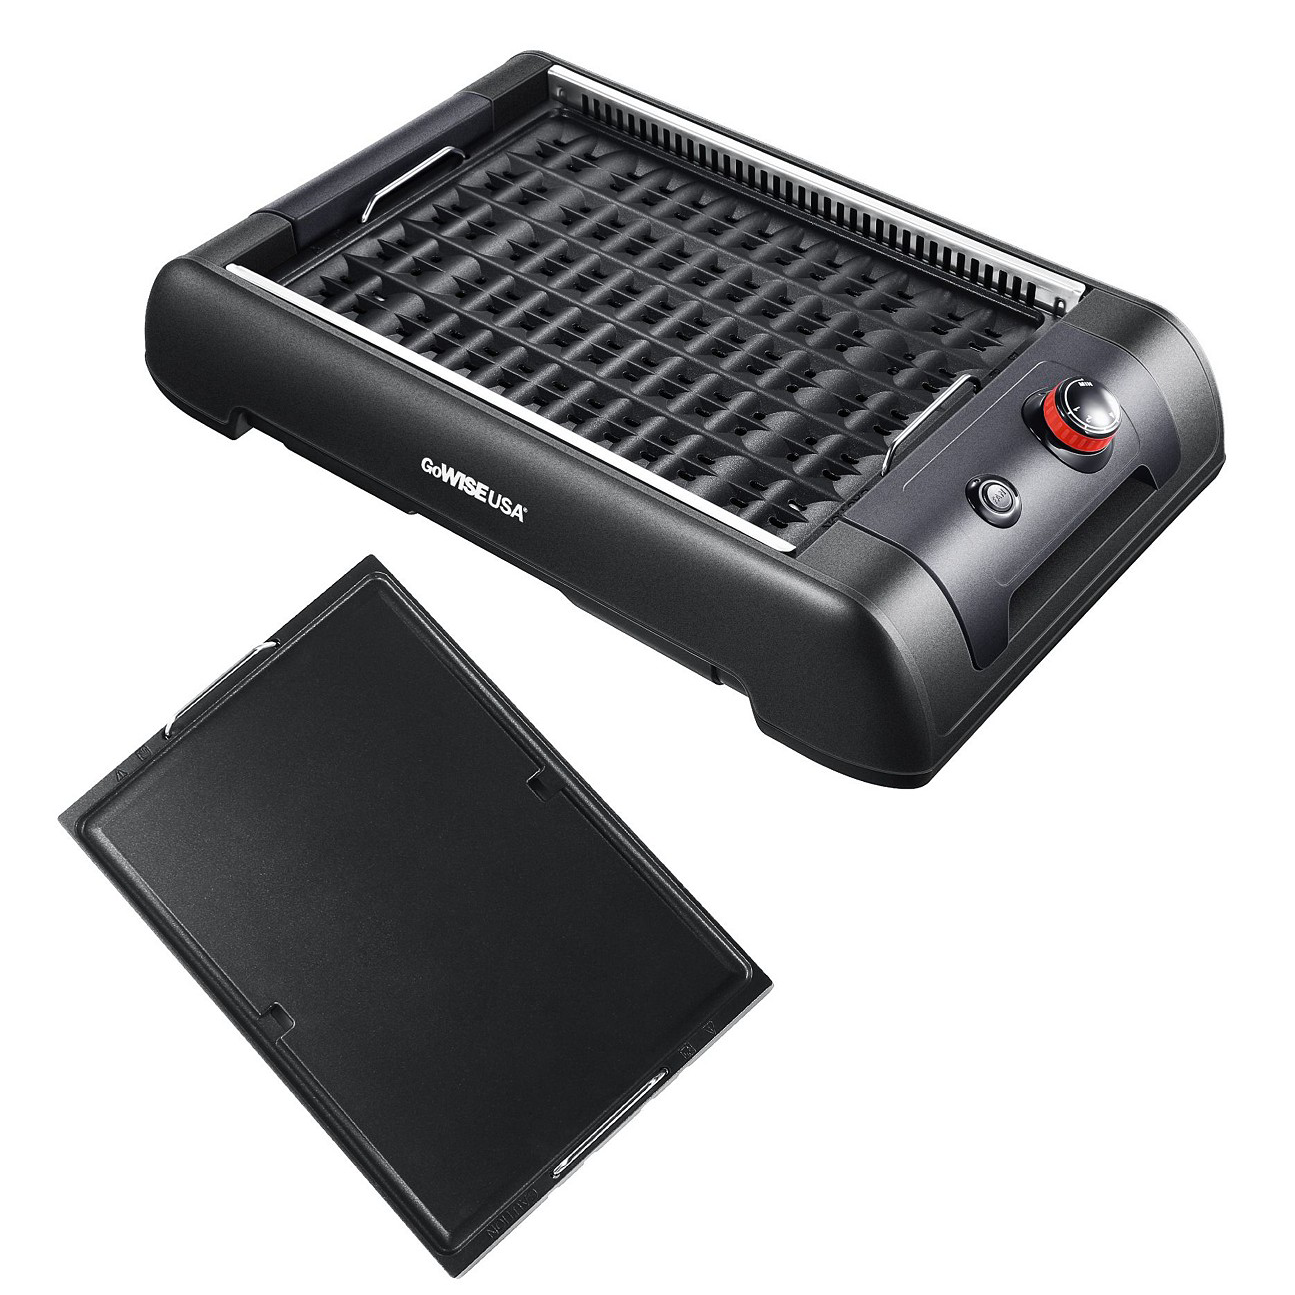 If it's raining or too cold for grilling, this electric indoor grill can handily pinch hit for an outdoor grill. With a generous cooking surface of around 20 by 12 inches, this grill can accommodate burgers or steaks for the whole family, with a side of veggies. No worries about setting off the fire alarm either; a built-in fan eliminates smoke. And come morning, the included flat cooking surface serves as a griddle to cook up pancakes, bacon, and fried eggs.